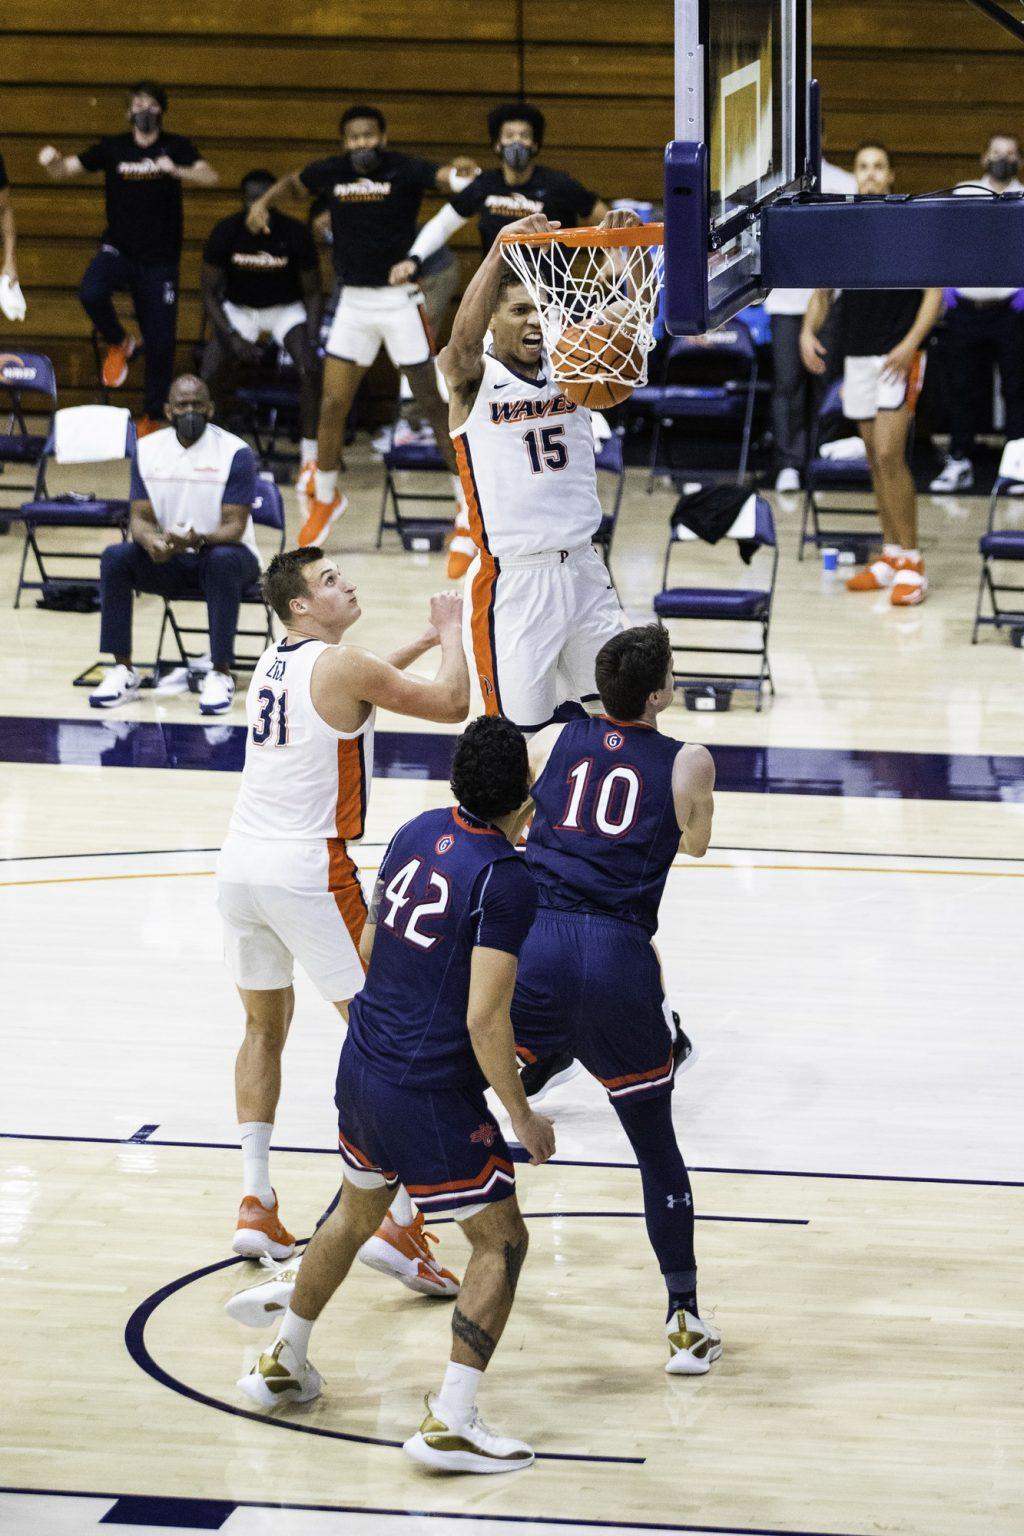 Edwards goes up for a two-handed jam in the second half. Of Pepperdine's 60 total points, 22 of them came from inside the paint.